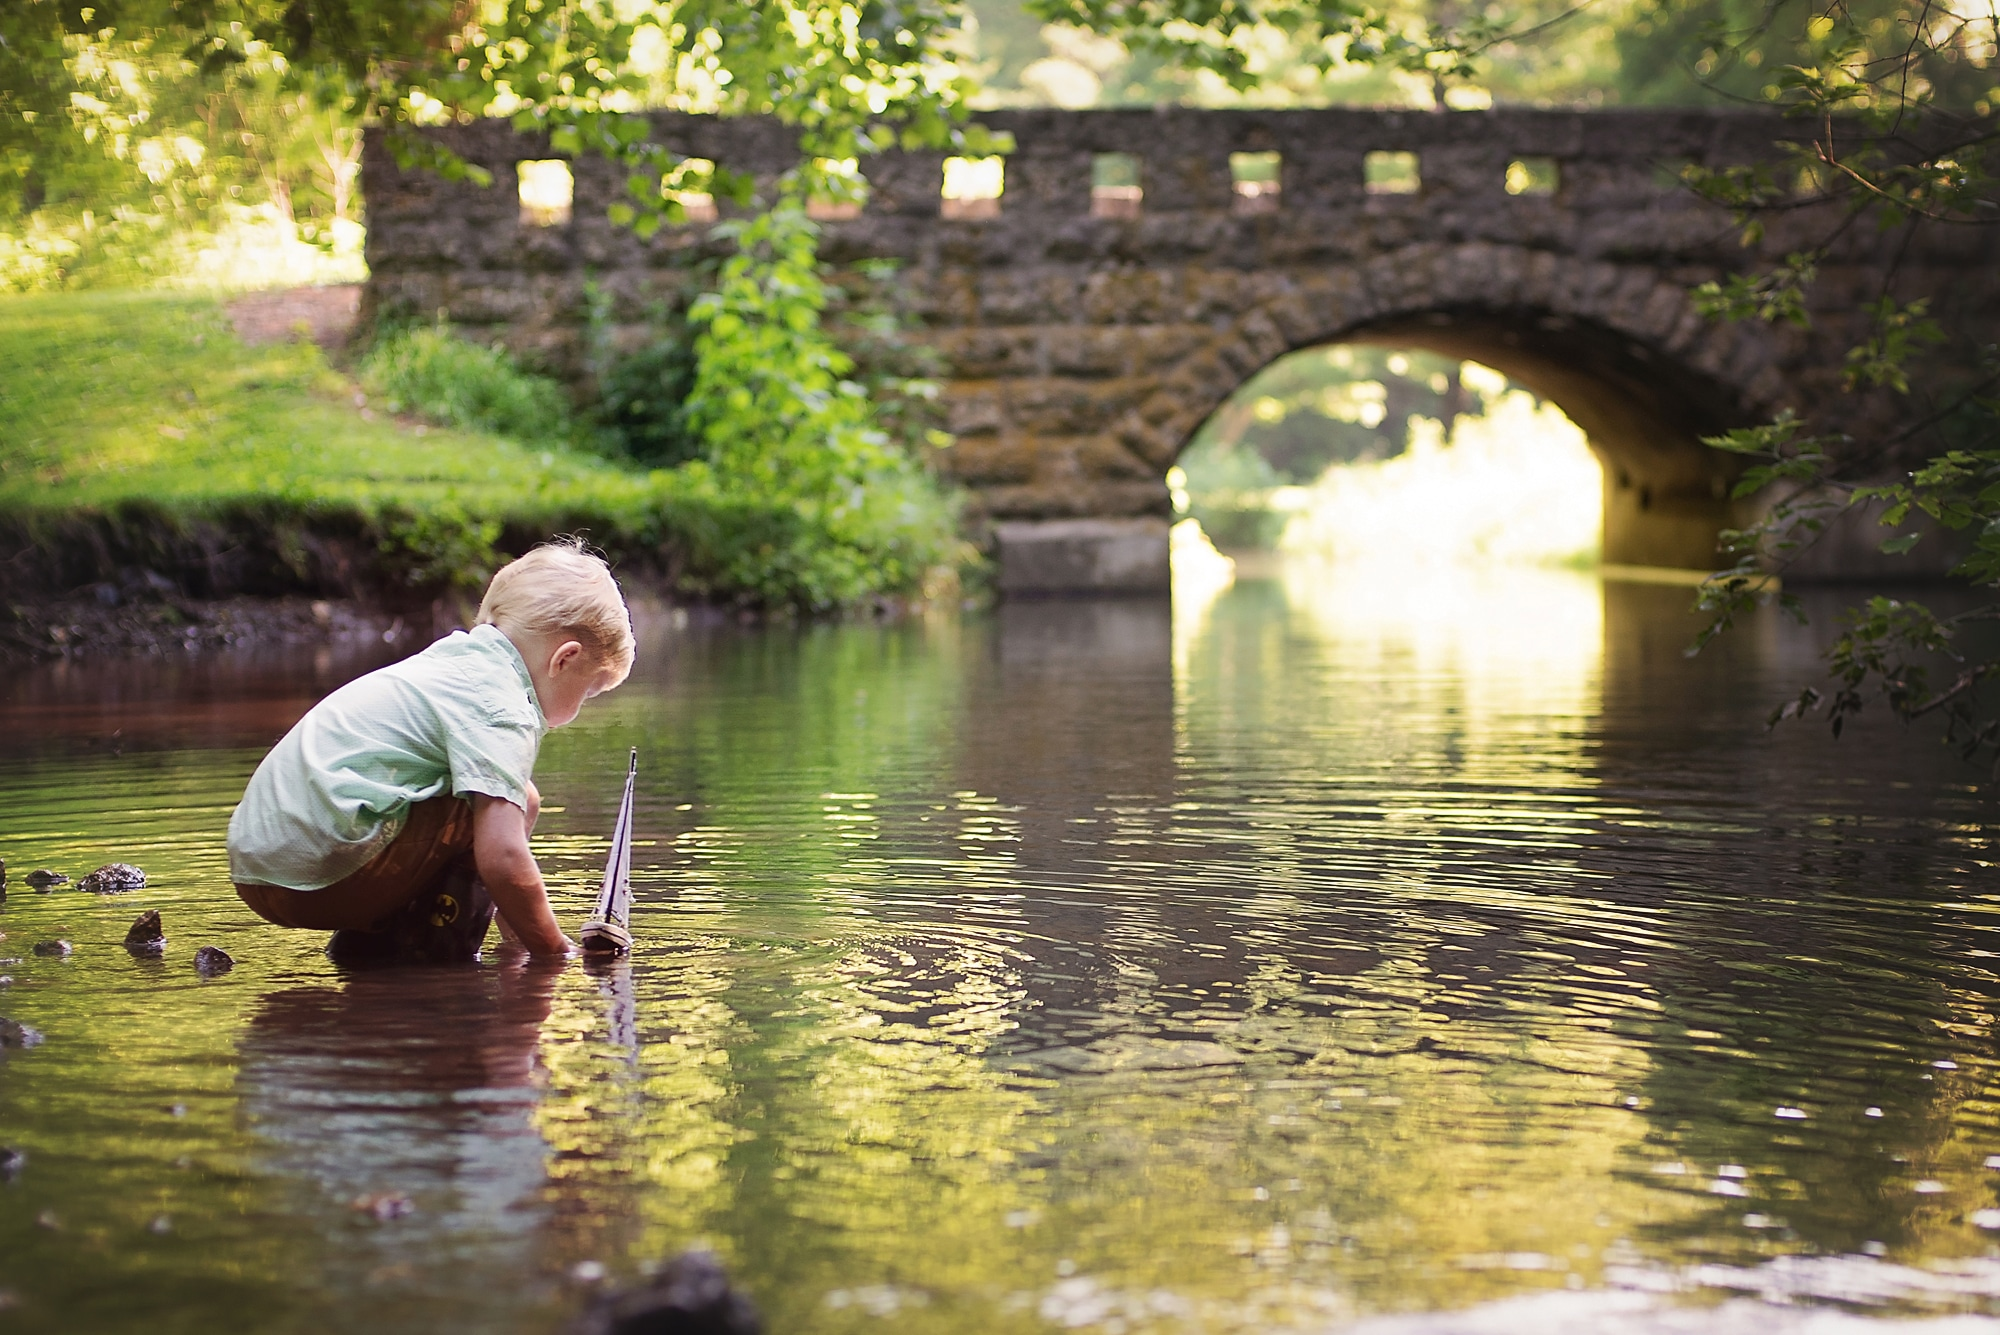 Boy playing with sailboat toy in creek